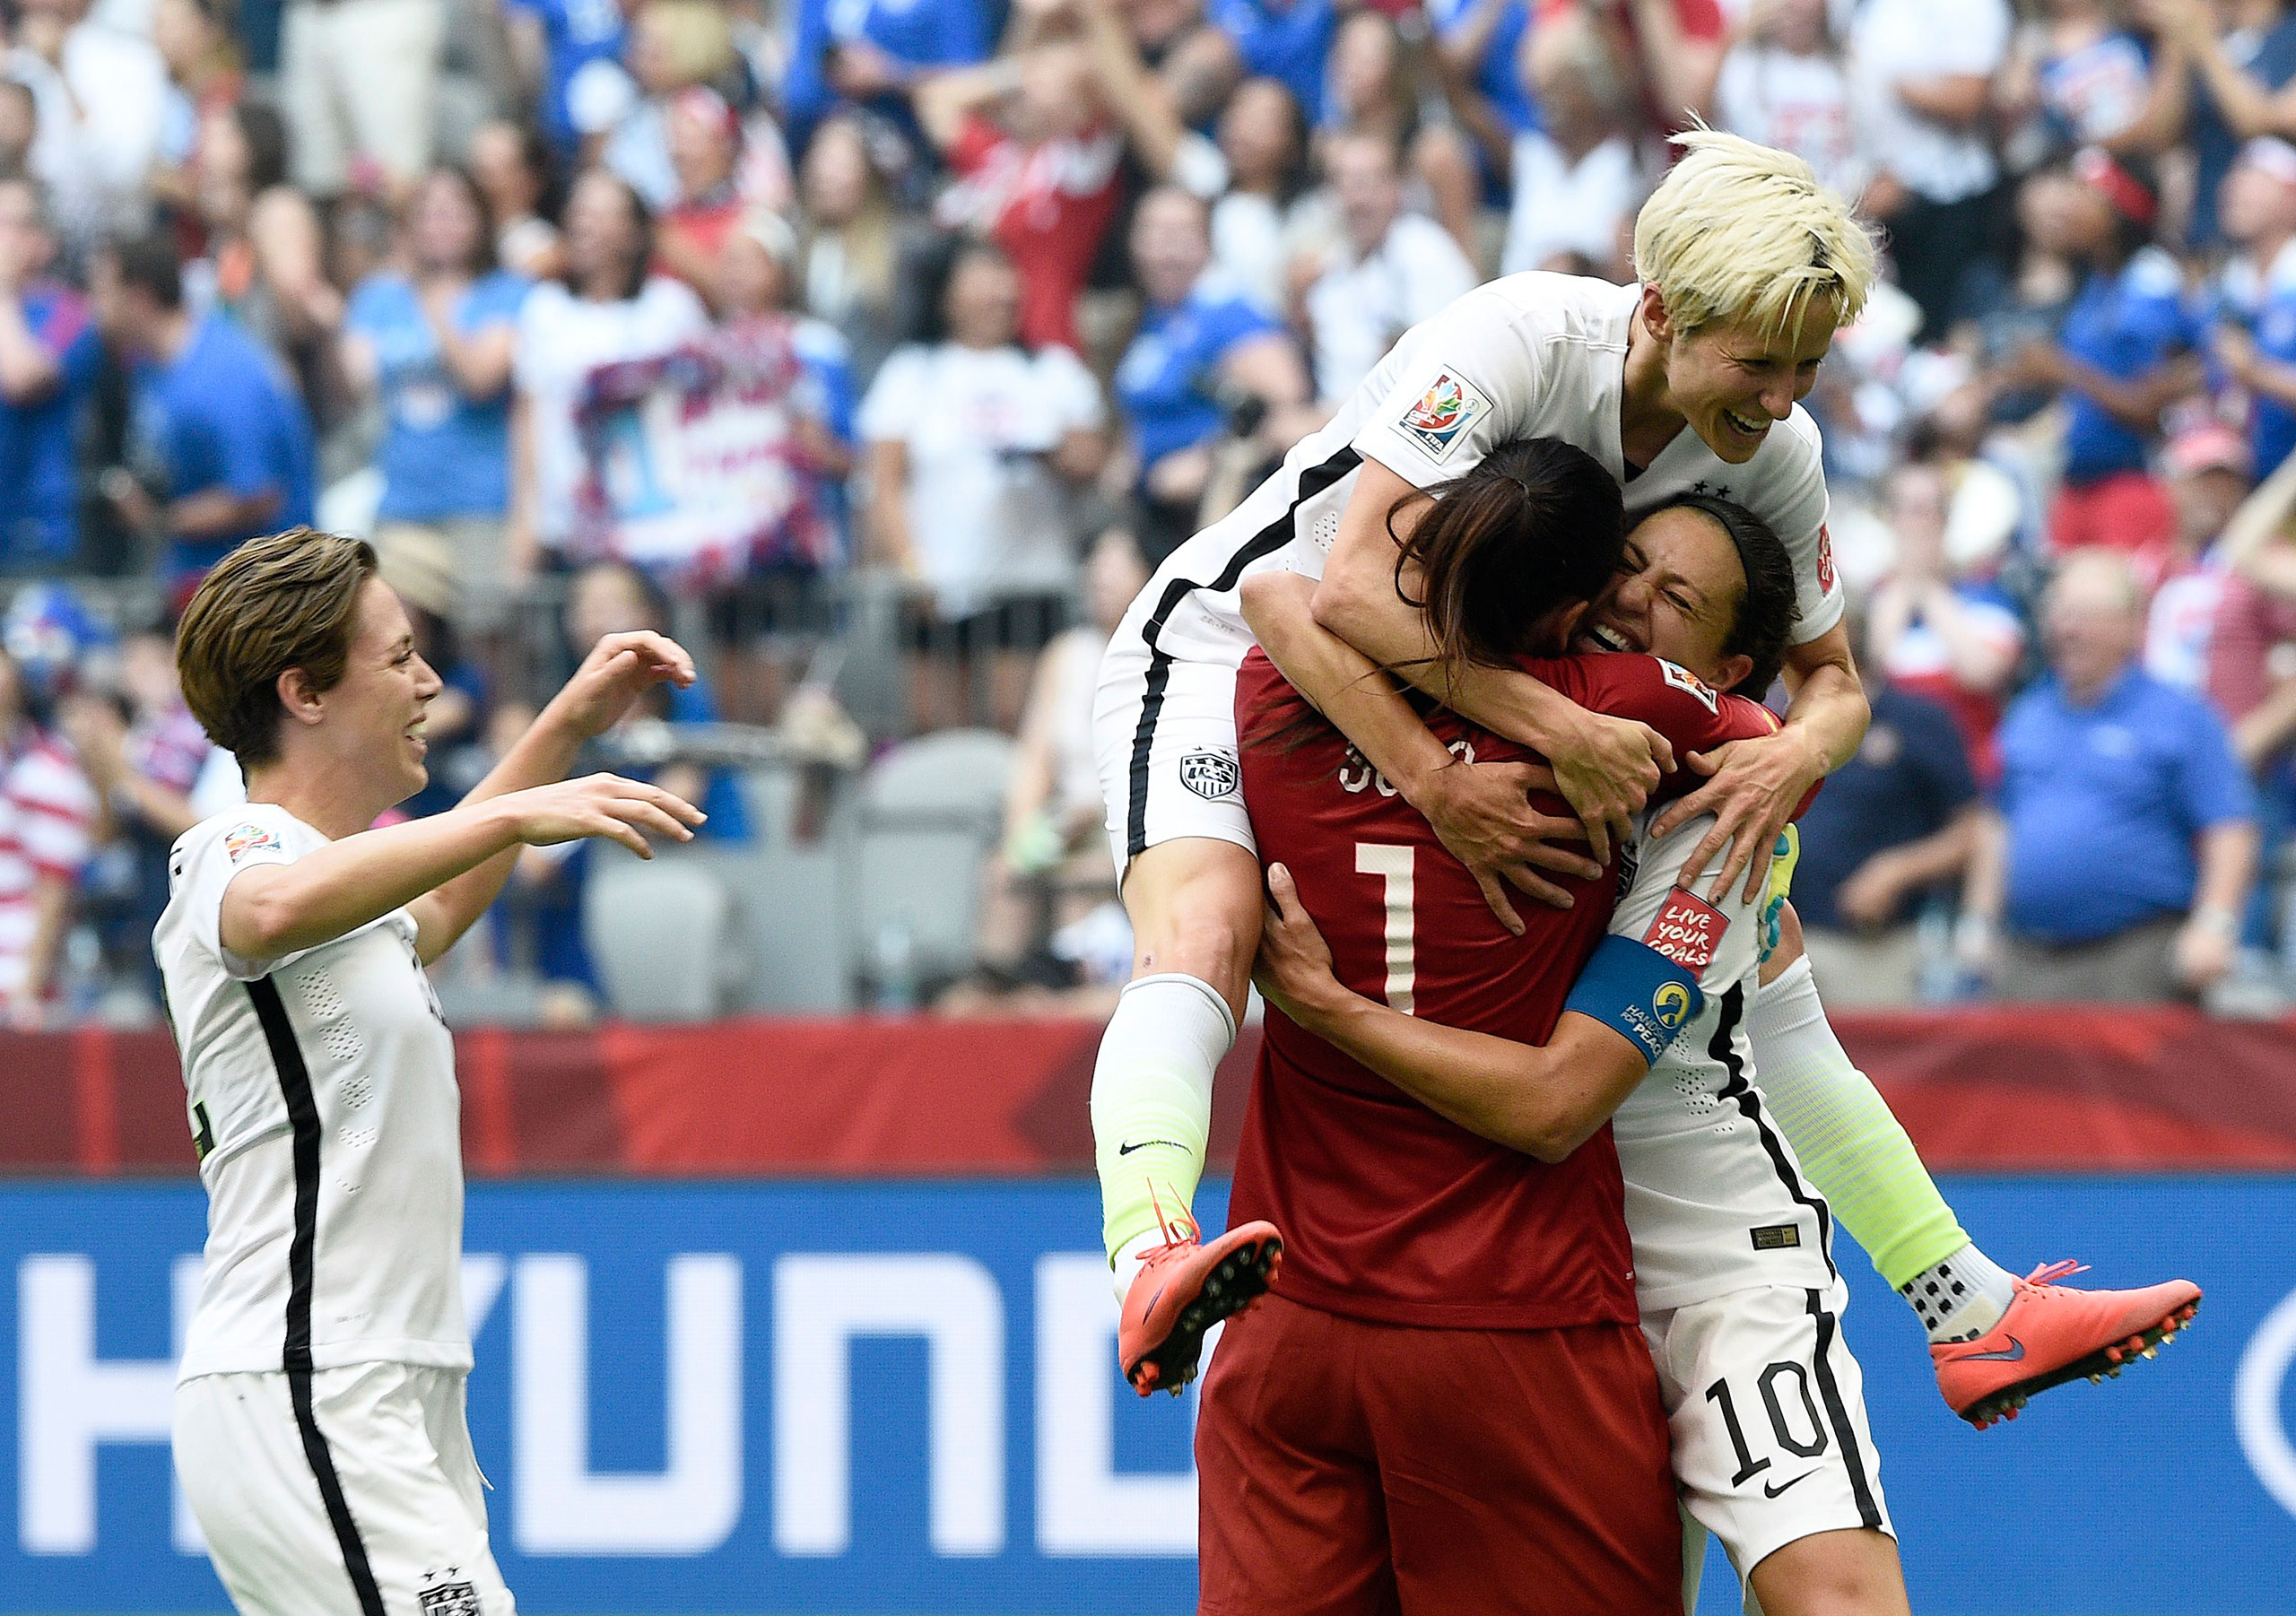 Carli Lloyd (10) is congratulated by goalkeeper Hope Solo (1) and midfielder Megan Rapinoe (top) after scoring a goal during the final match between USA and Japan during the 2015 FIFA Women's World Cup at the BC Place Stadium in Vancouver, Canada, July 5, 2015.